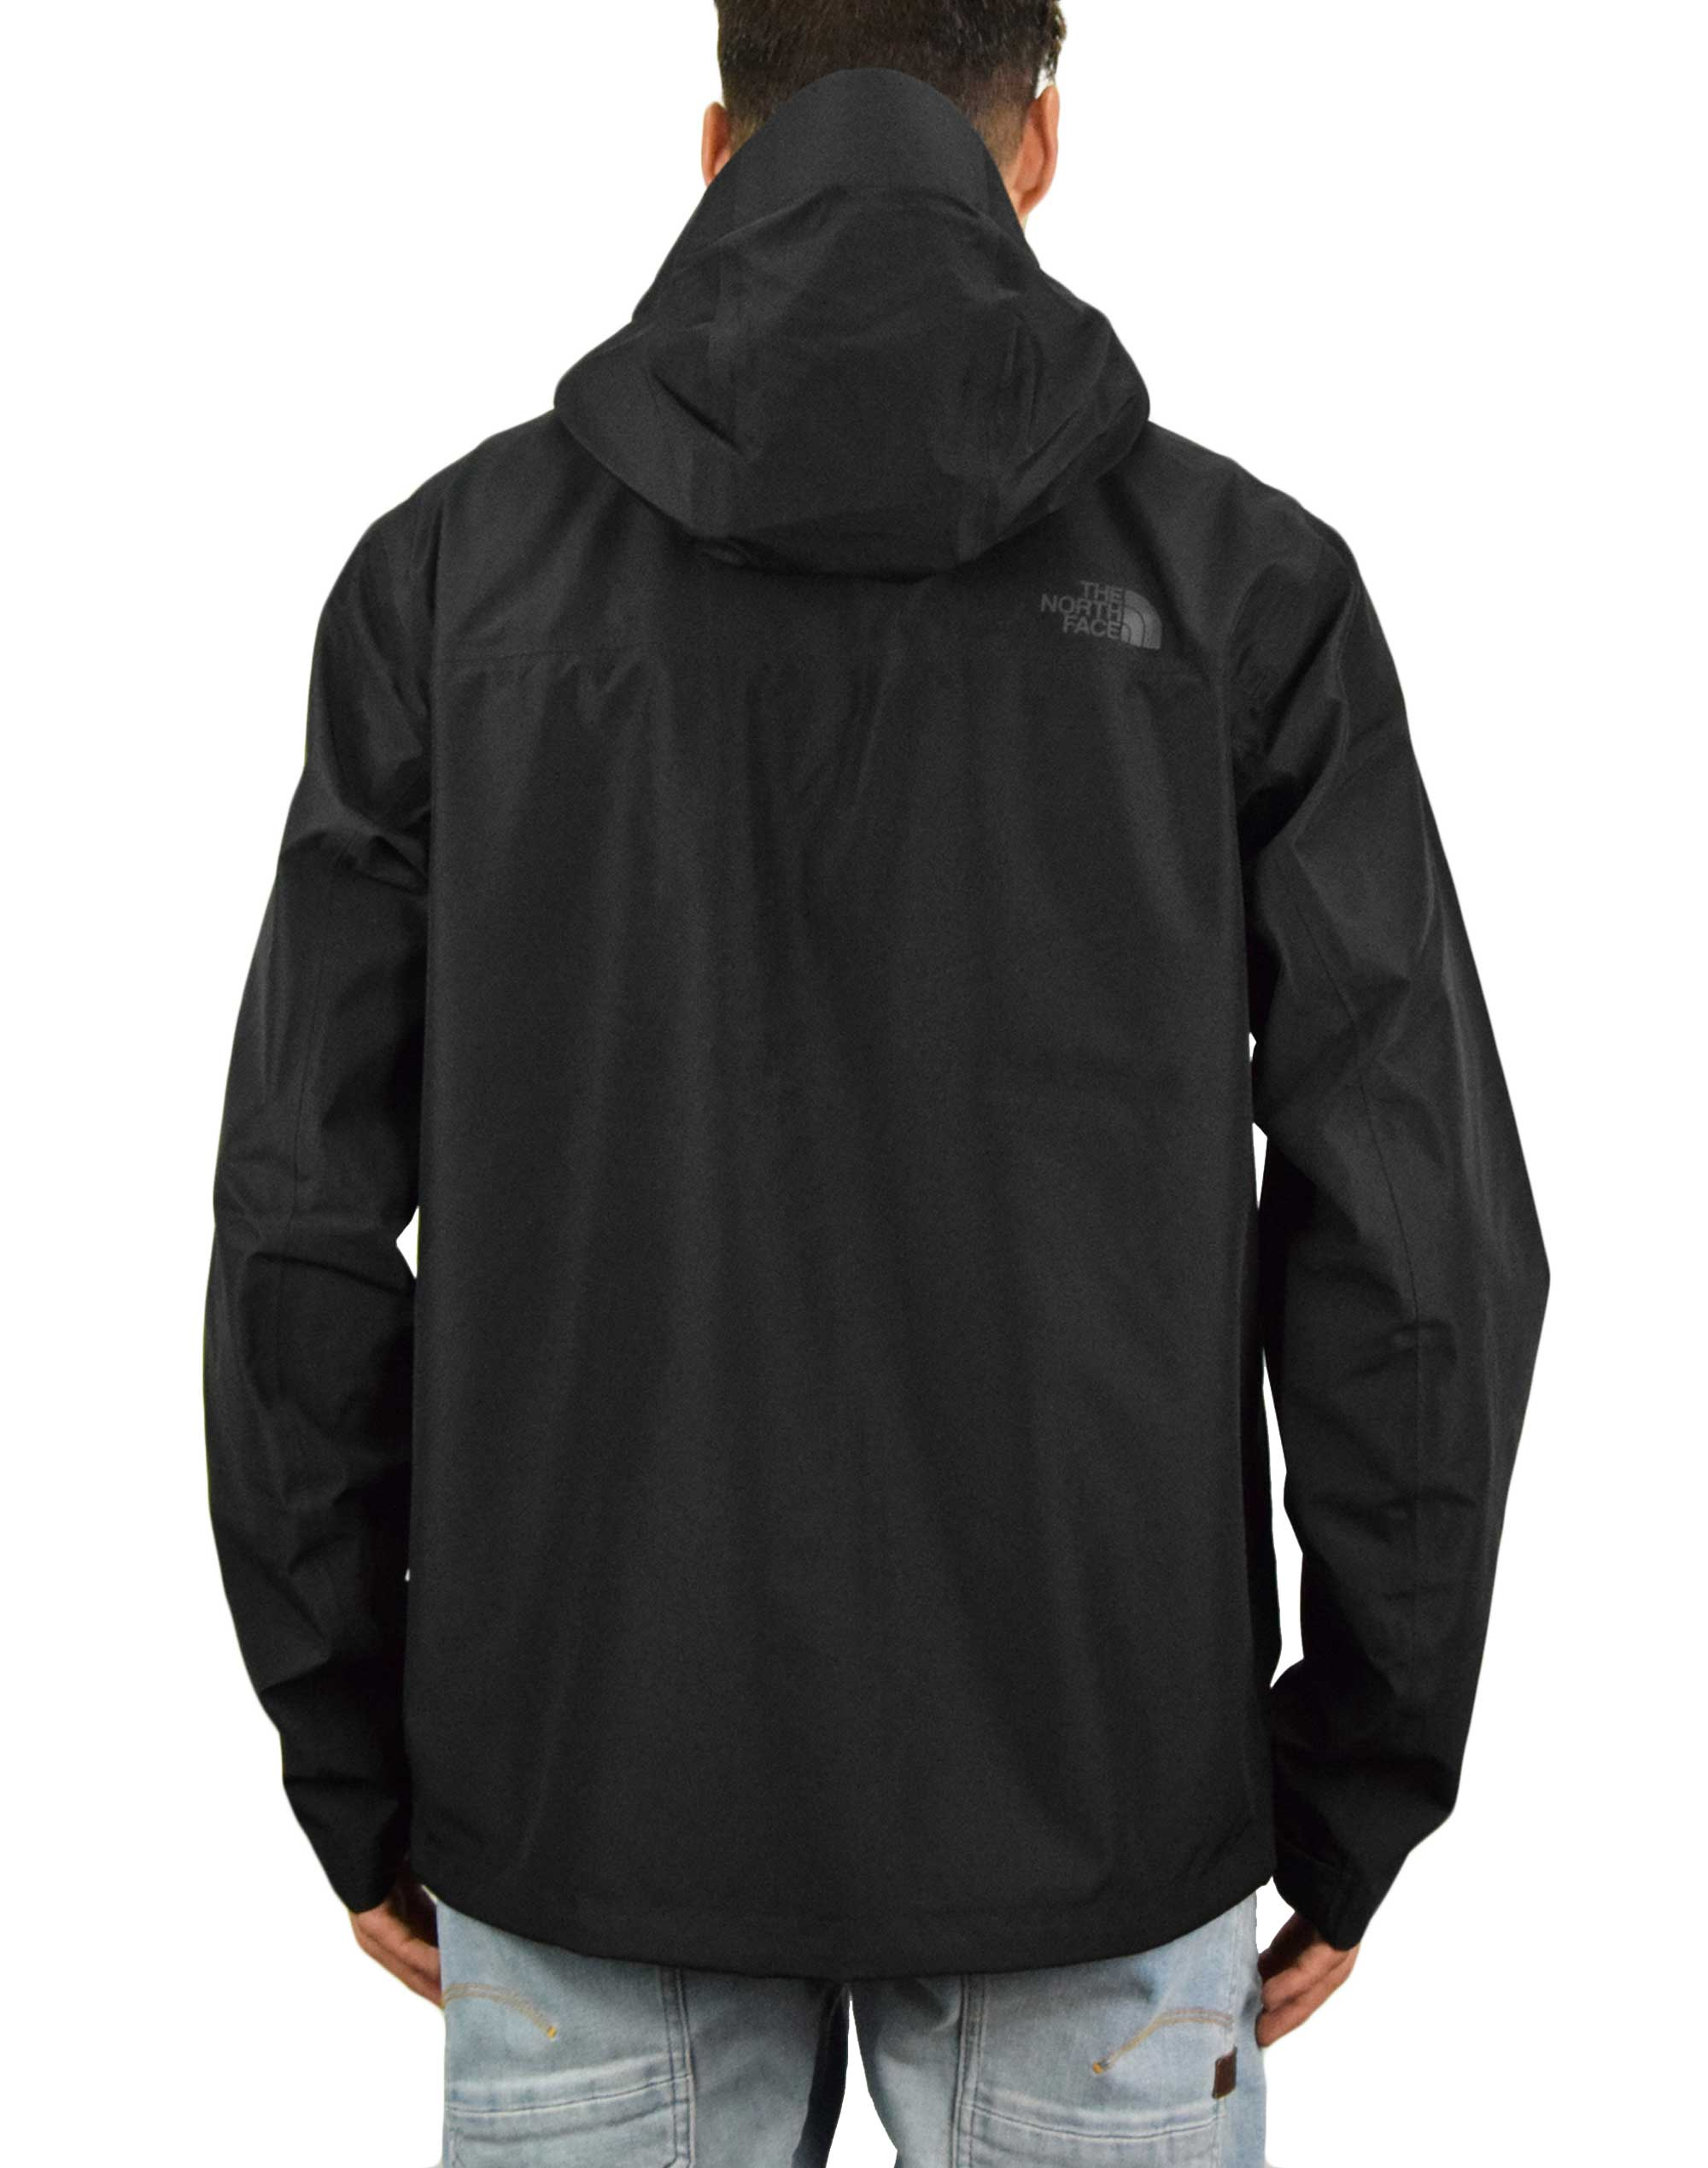 The North Face Dryzzle Futurelight Jacket (NF0A4AHMJK31) Black